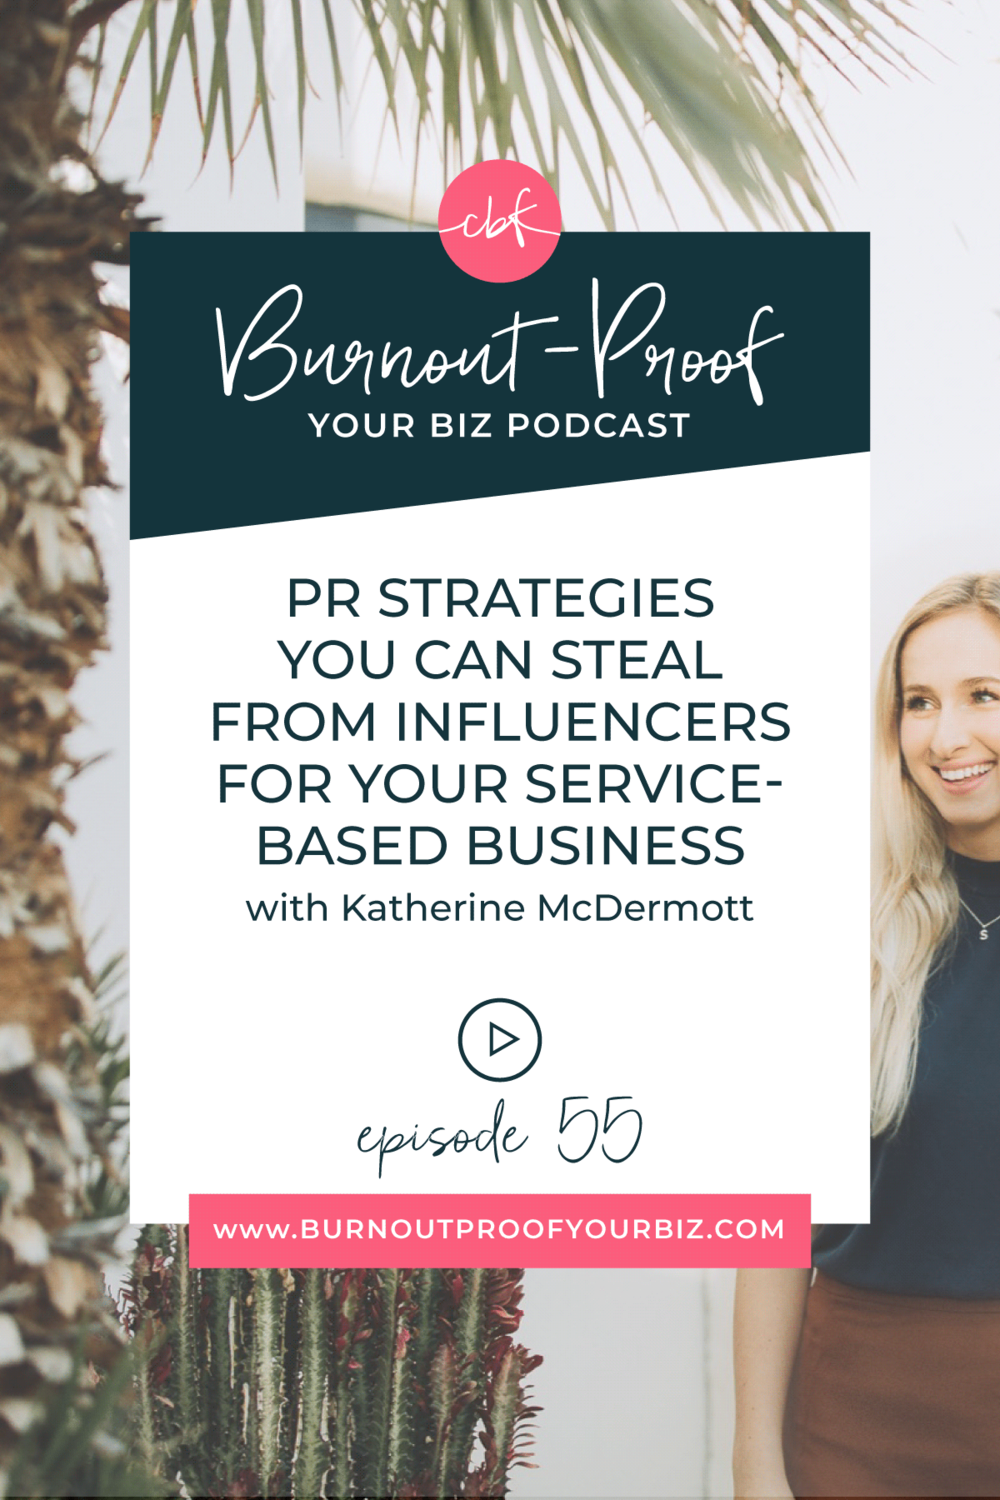 PR STRATEGIES YOU CAN STEAL FROM INFLUENCERS FOR YOUR SERVICE-BASED BUSINESS on Burnout-Proof Your Biz Podcast with Chelsea B Foster | Episode 055 with Katherine McDermott of Slightly Savvy | Learn how to run your biz and live your dream life on your own terms without the fear of burnout.  |||  PUBLIC RELATIONS FOR SERVICE-BASED BUSINESSES | BRAND PARTNERSHIPS | PR STRATEGIES THAT INFLUENCERS USE | ENTREPRENEUR INFLUENCER | WORKING WITH BRANDS AS AN ENTREPRENEUR | BRAND COLLABORATIONS | AFFILIATE MARKETING | BECOMING AN INFLUENCER | OUTSOURCING | BUSINESS COACH | WORKFLOW & PRODUCTIVITY SPECIALIST | SYSTEMS & ORGANIZATION SPECIALIST FOR COACHES | ADD MORE FREEDOM TO YOUR LIFE | BUSINESS COACH FOR BLOGGERS